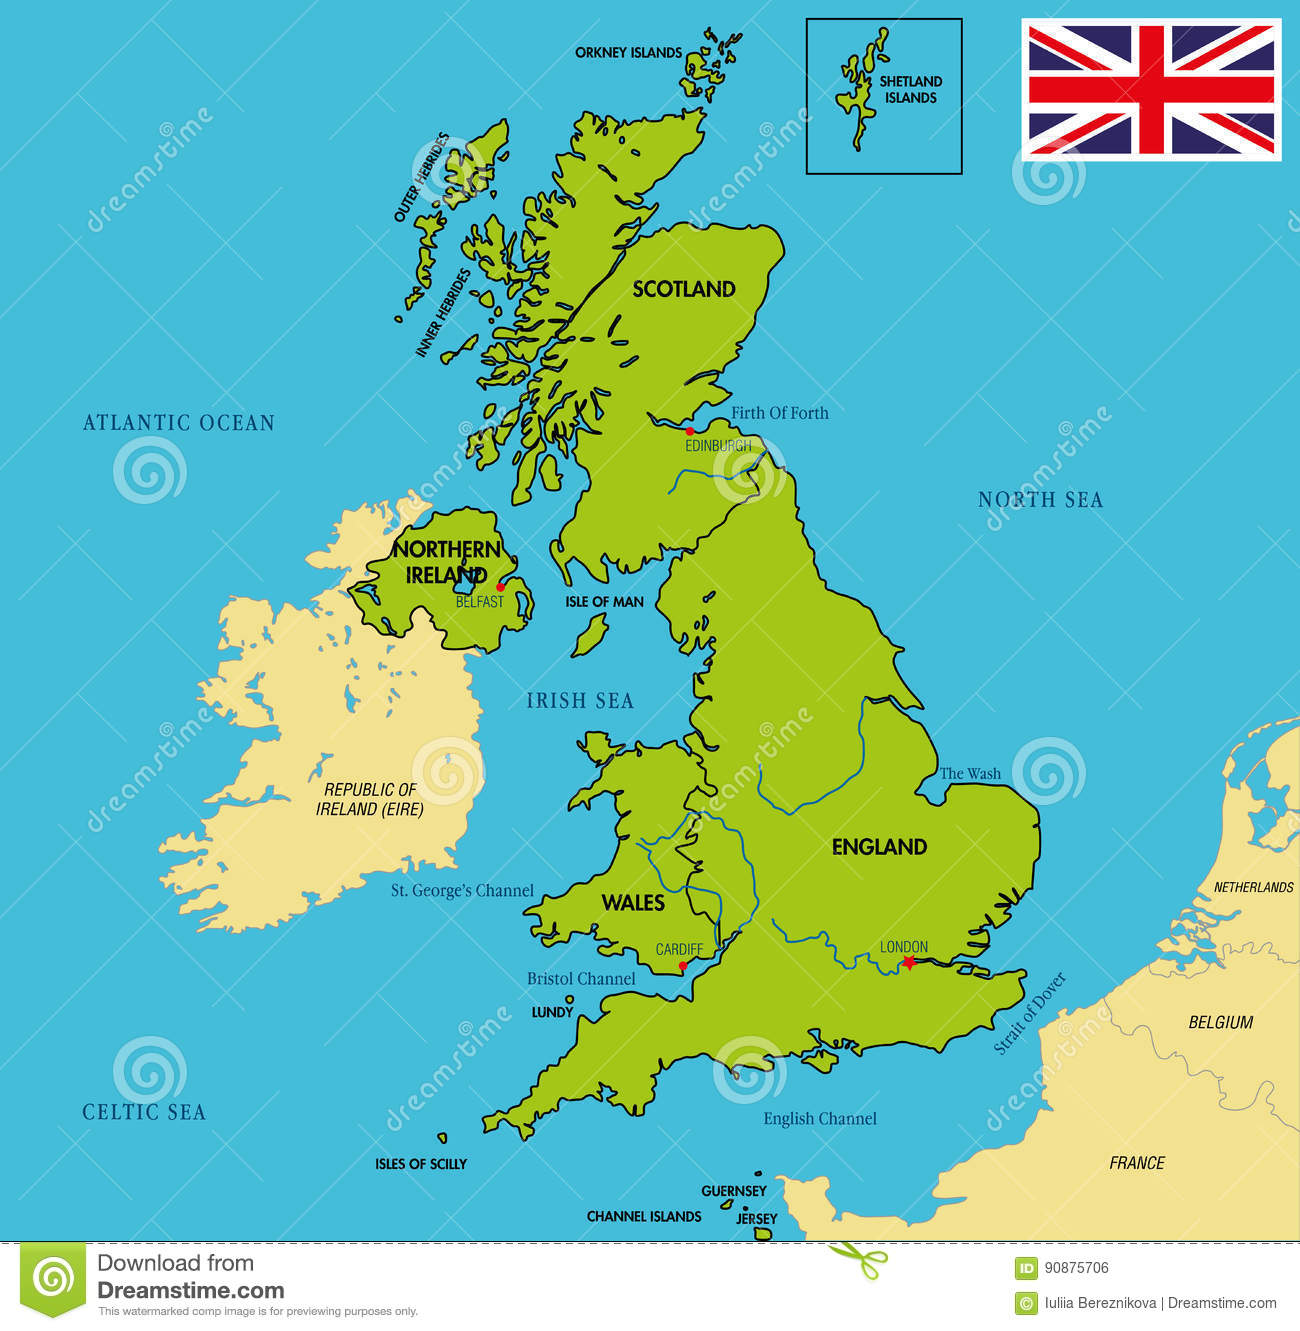 Political Map Of United Kingdom With Regions And Their Capitals - Political map of united kingdom